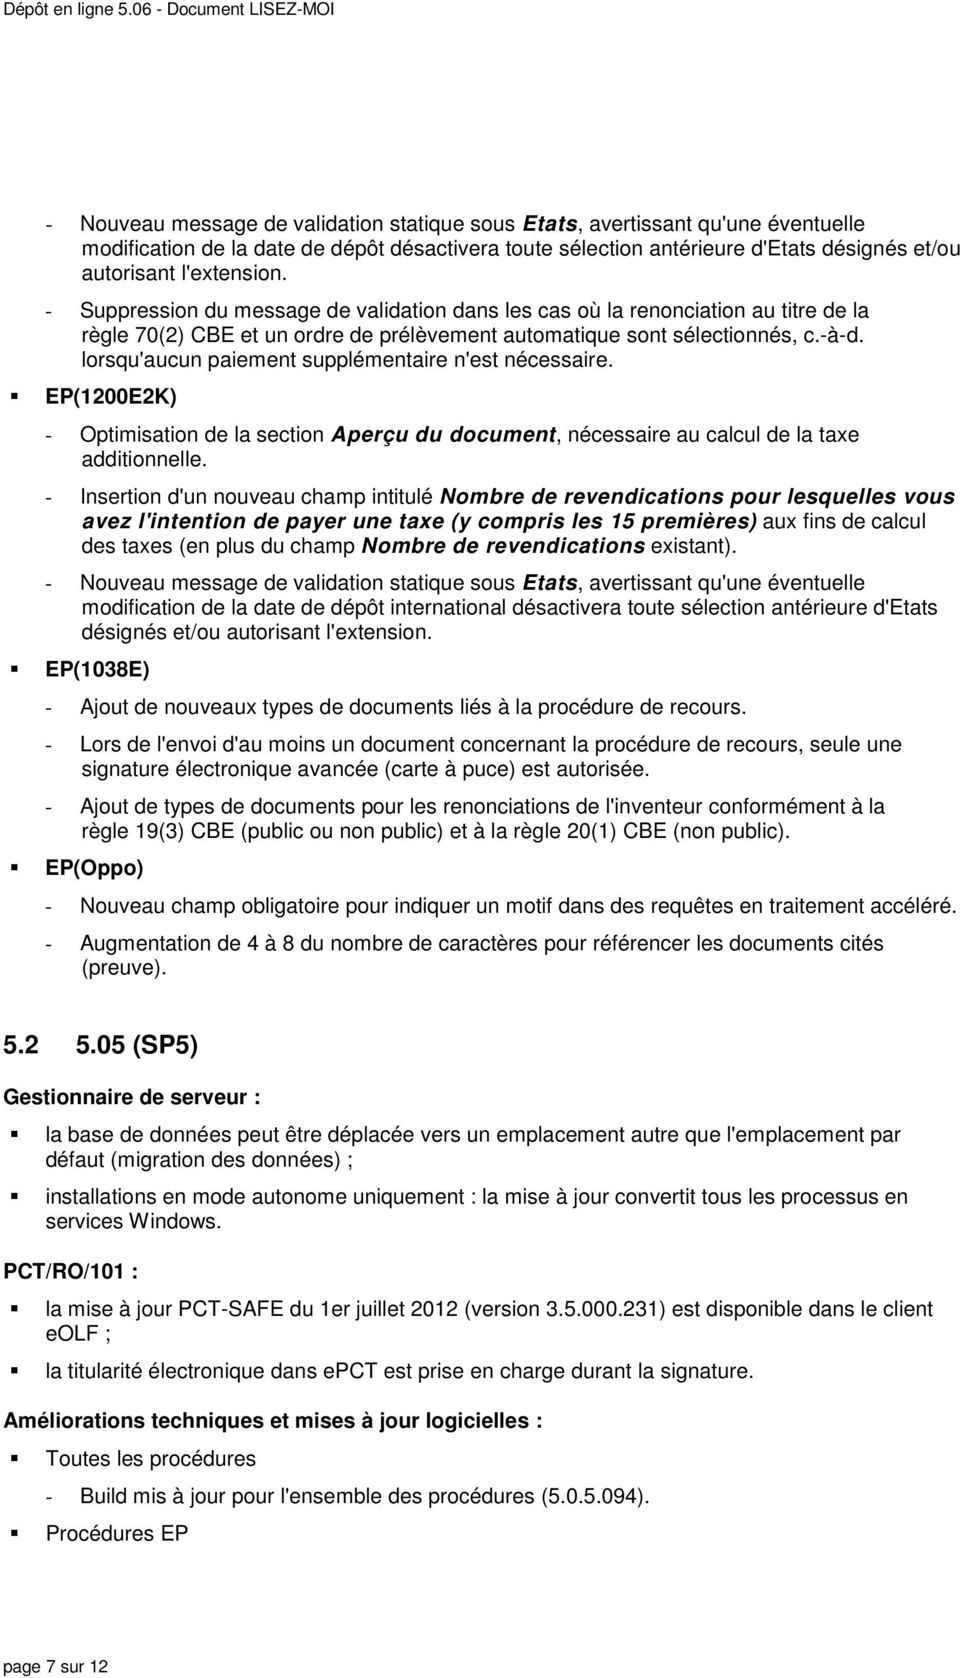 lorsqu'aucun paiement supplémentaire n'est nécessaire. EP(1200E2K) - Optimisation de la section Aperçu du document, nécessaire au calcul de la taxe additionnelle.